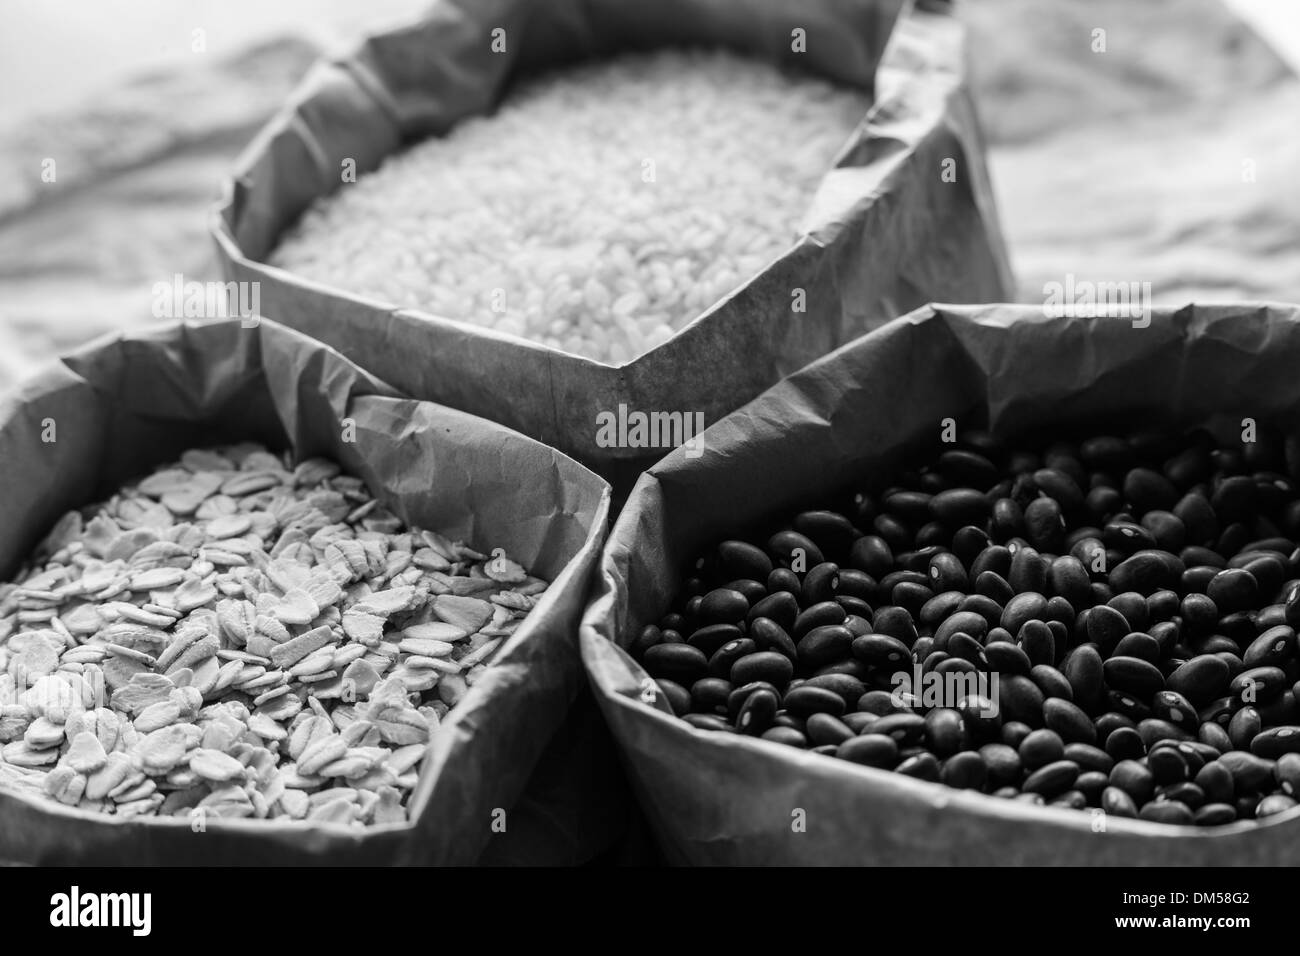 B&W of bags of grains. - Stock Image